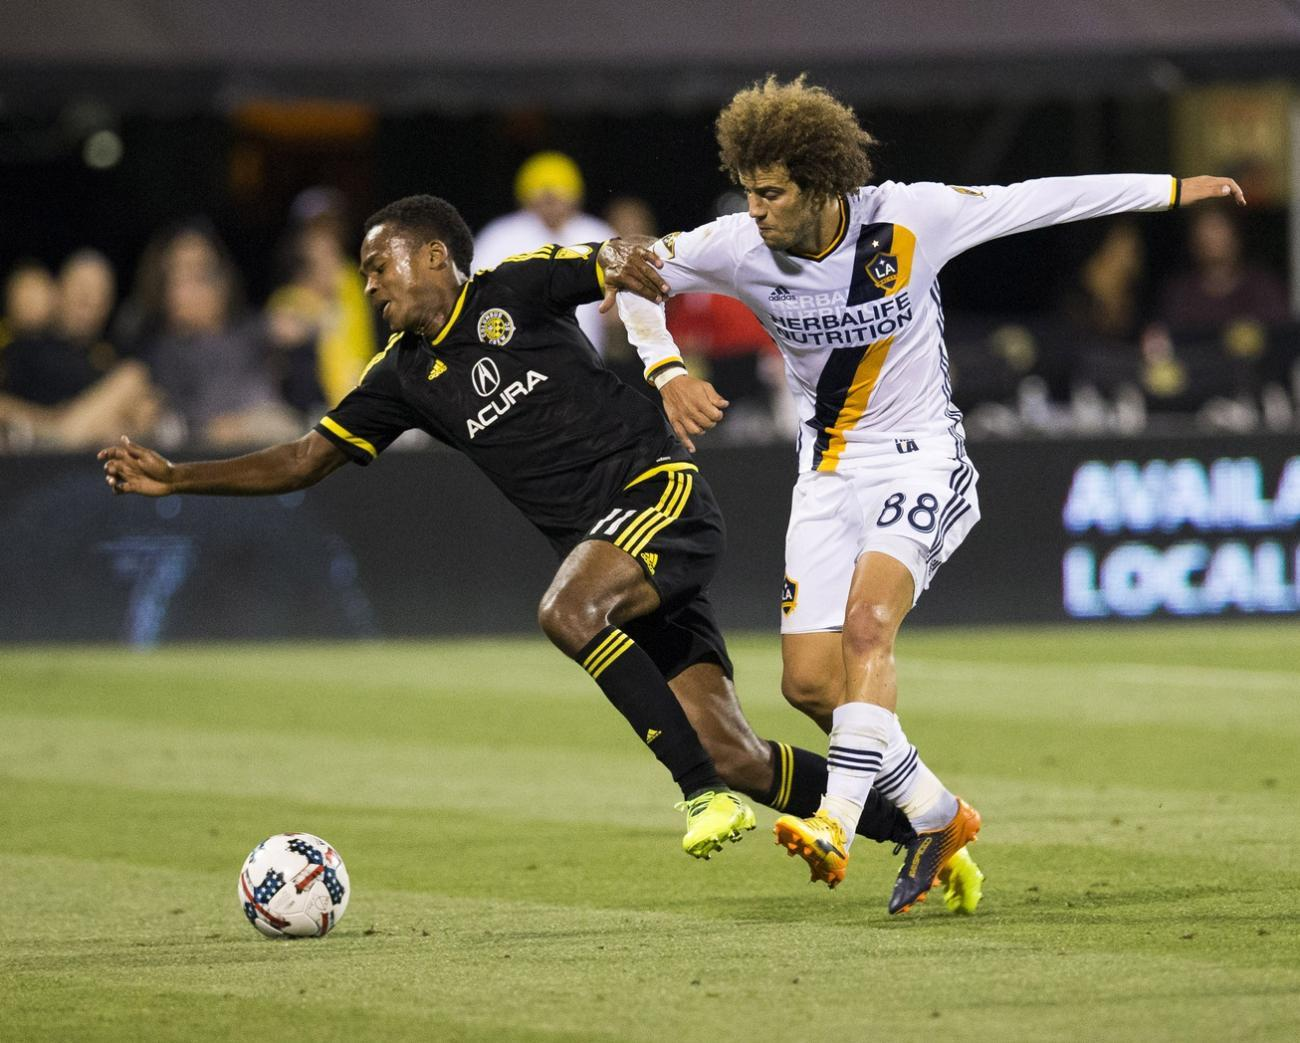 Dc united vs la galaxy betting expert football reasonable percentage of bet income spent on housing